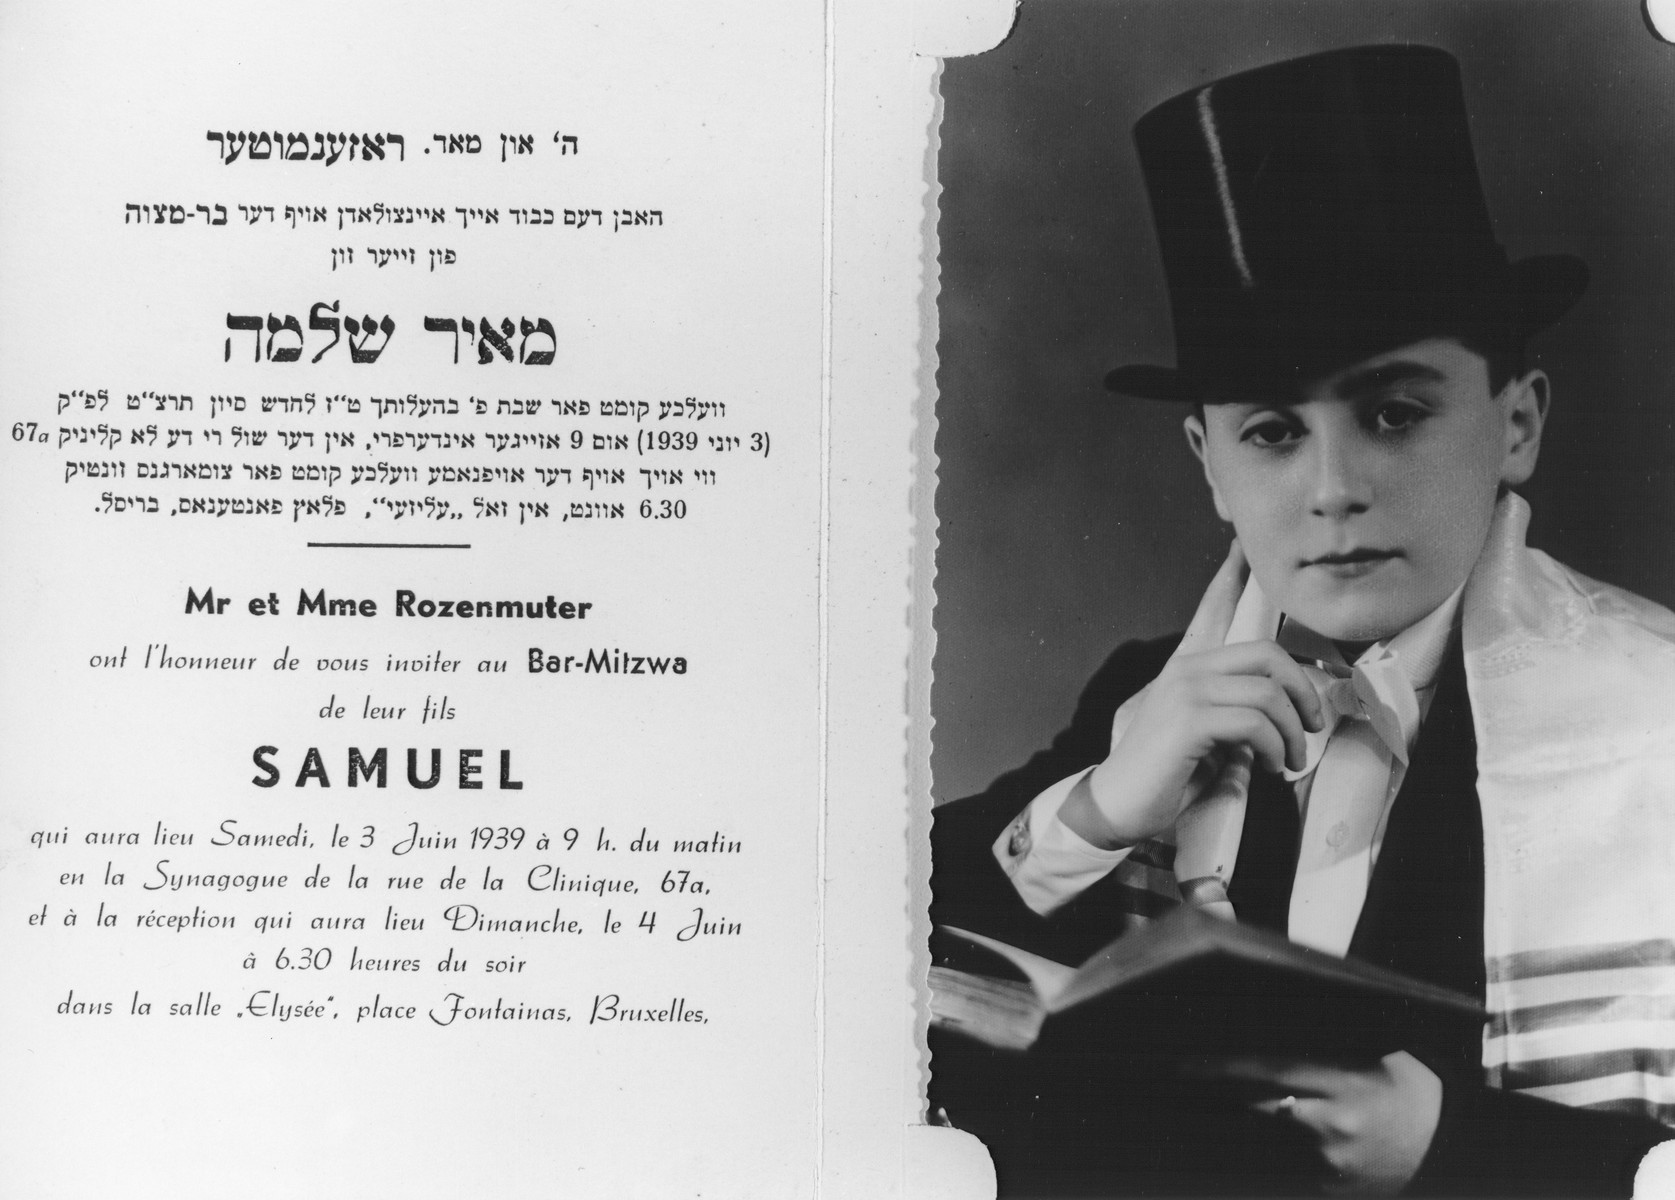 Invitation in Yiddish and French to the bar mitzvah of Samuel (Meir Shlomo) Rozenmuter on June 3, 1939 at the synagogue on the rue de la Clinique in Brussels, Belgium.